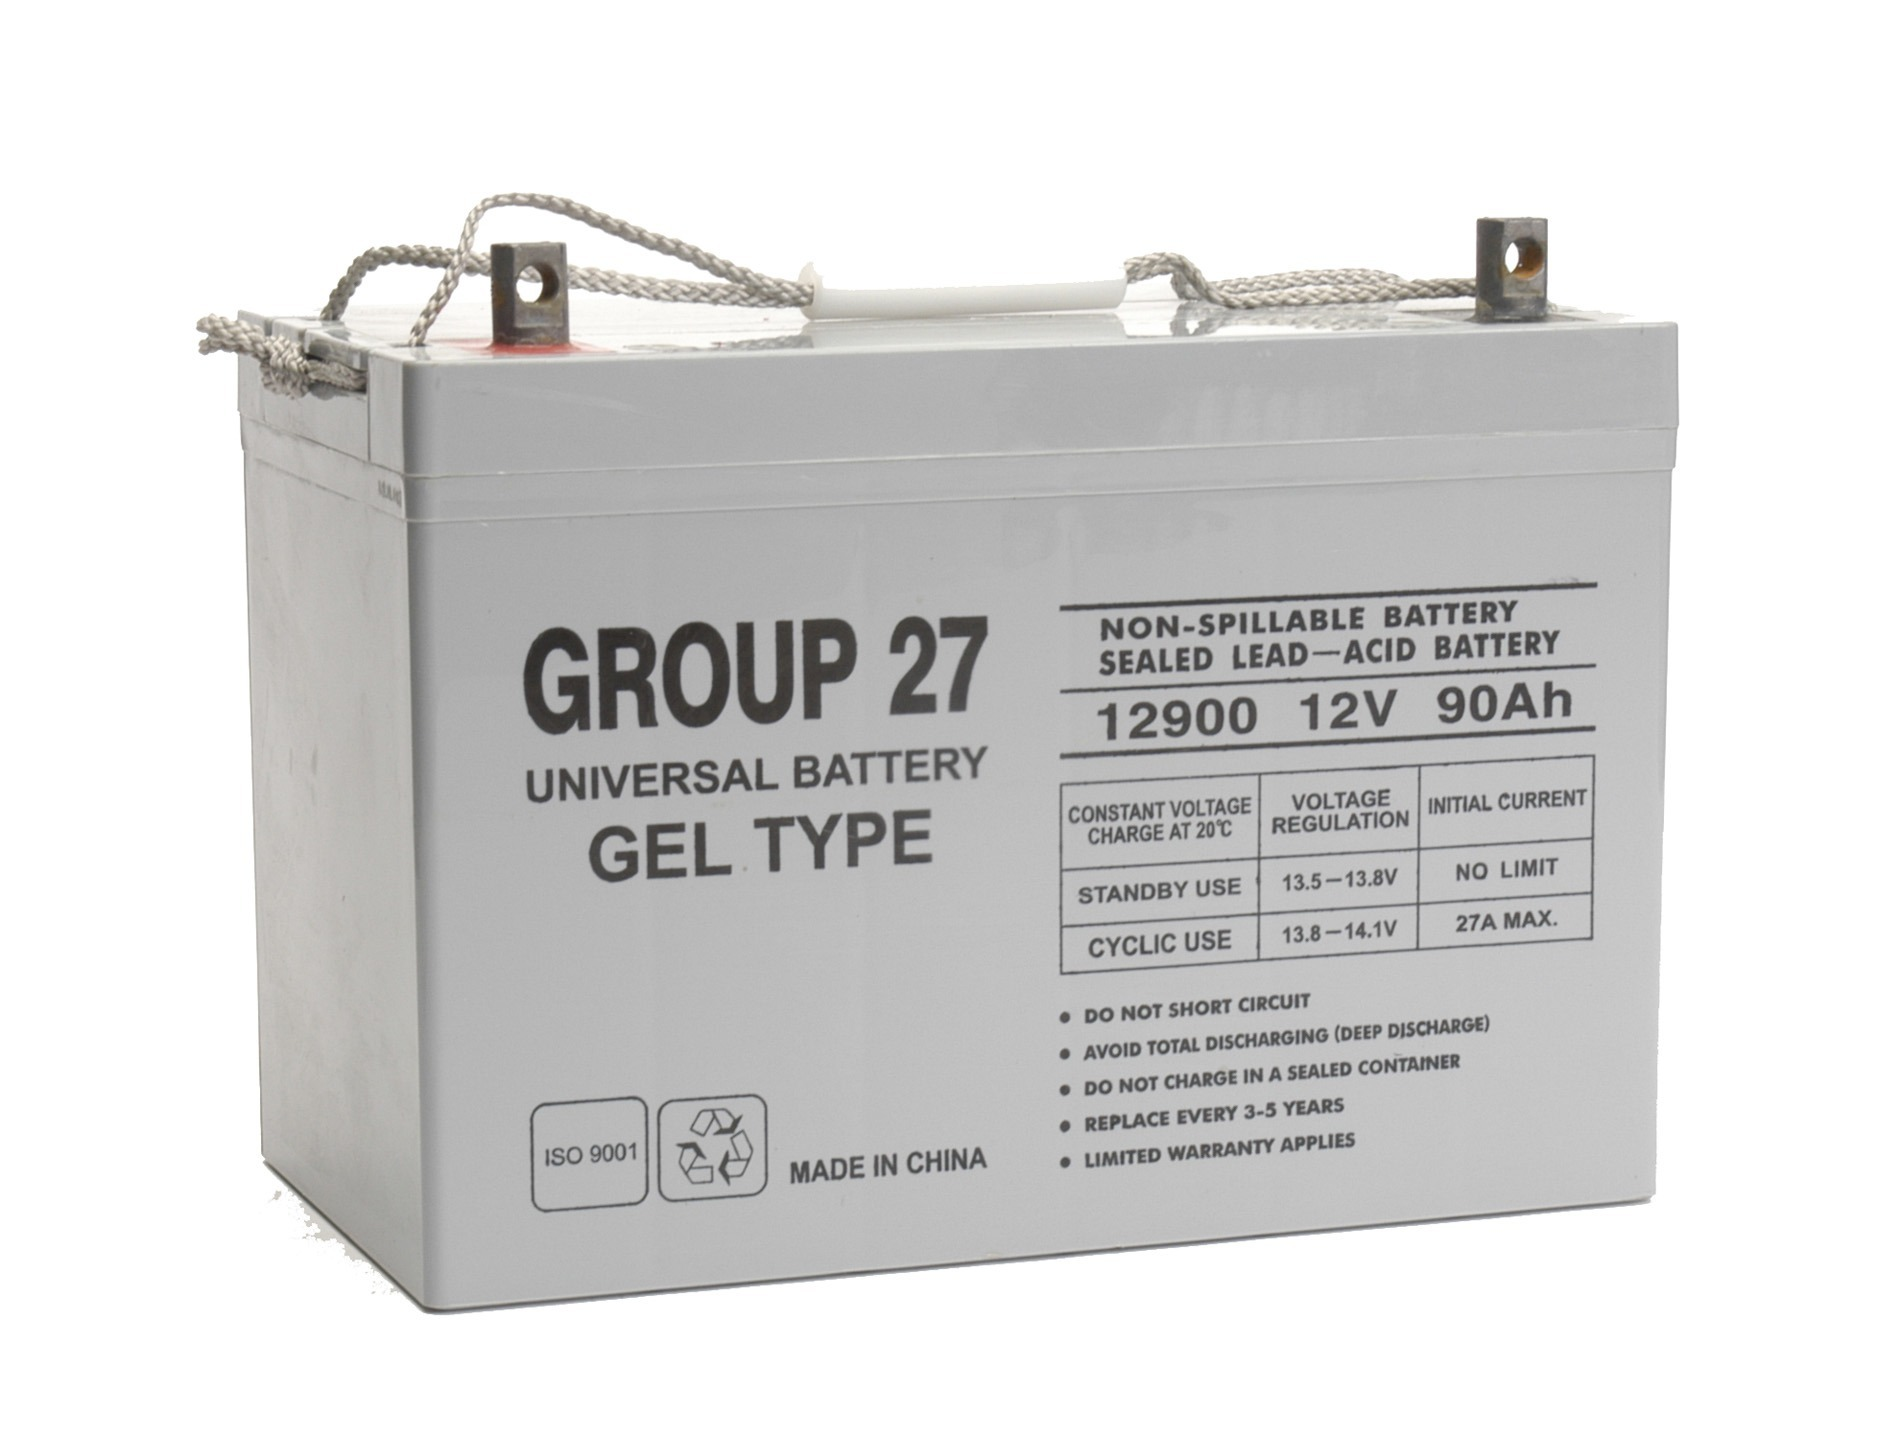 12v 90ah (Group 27) Gel Battery for Clarke Vantage 17 Floor Autoscrubber